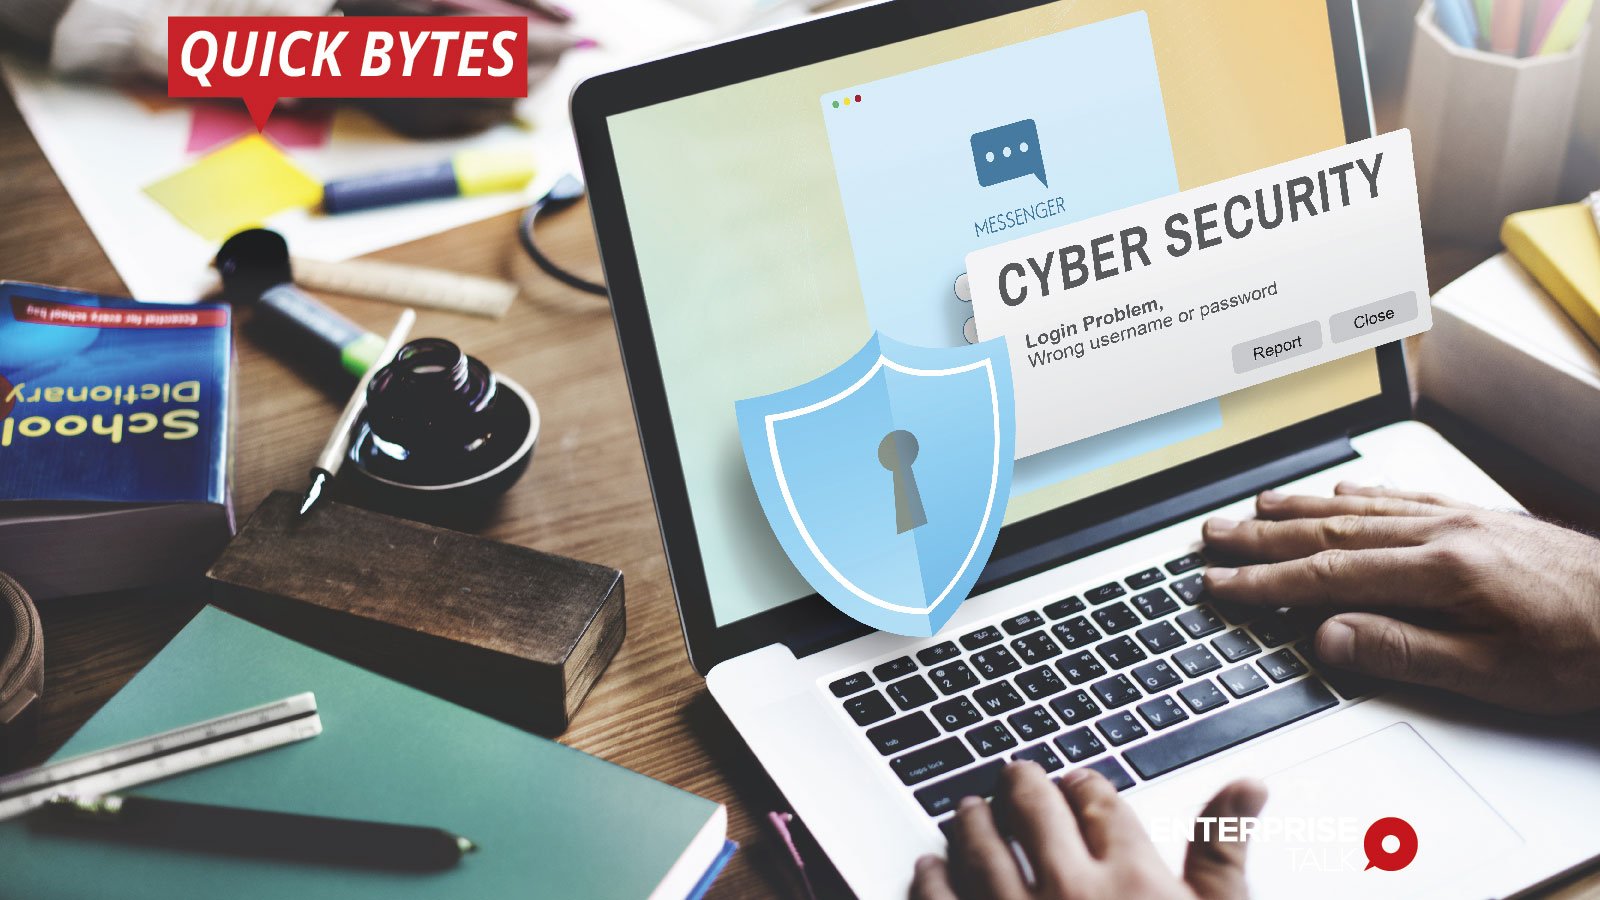 Advent Technologies, Forescout, cyber security, acquisition, 2020, private equity investor